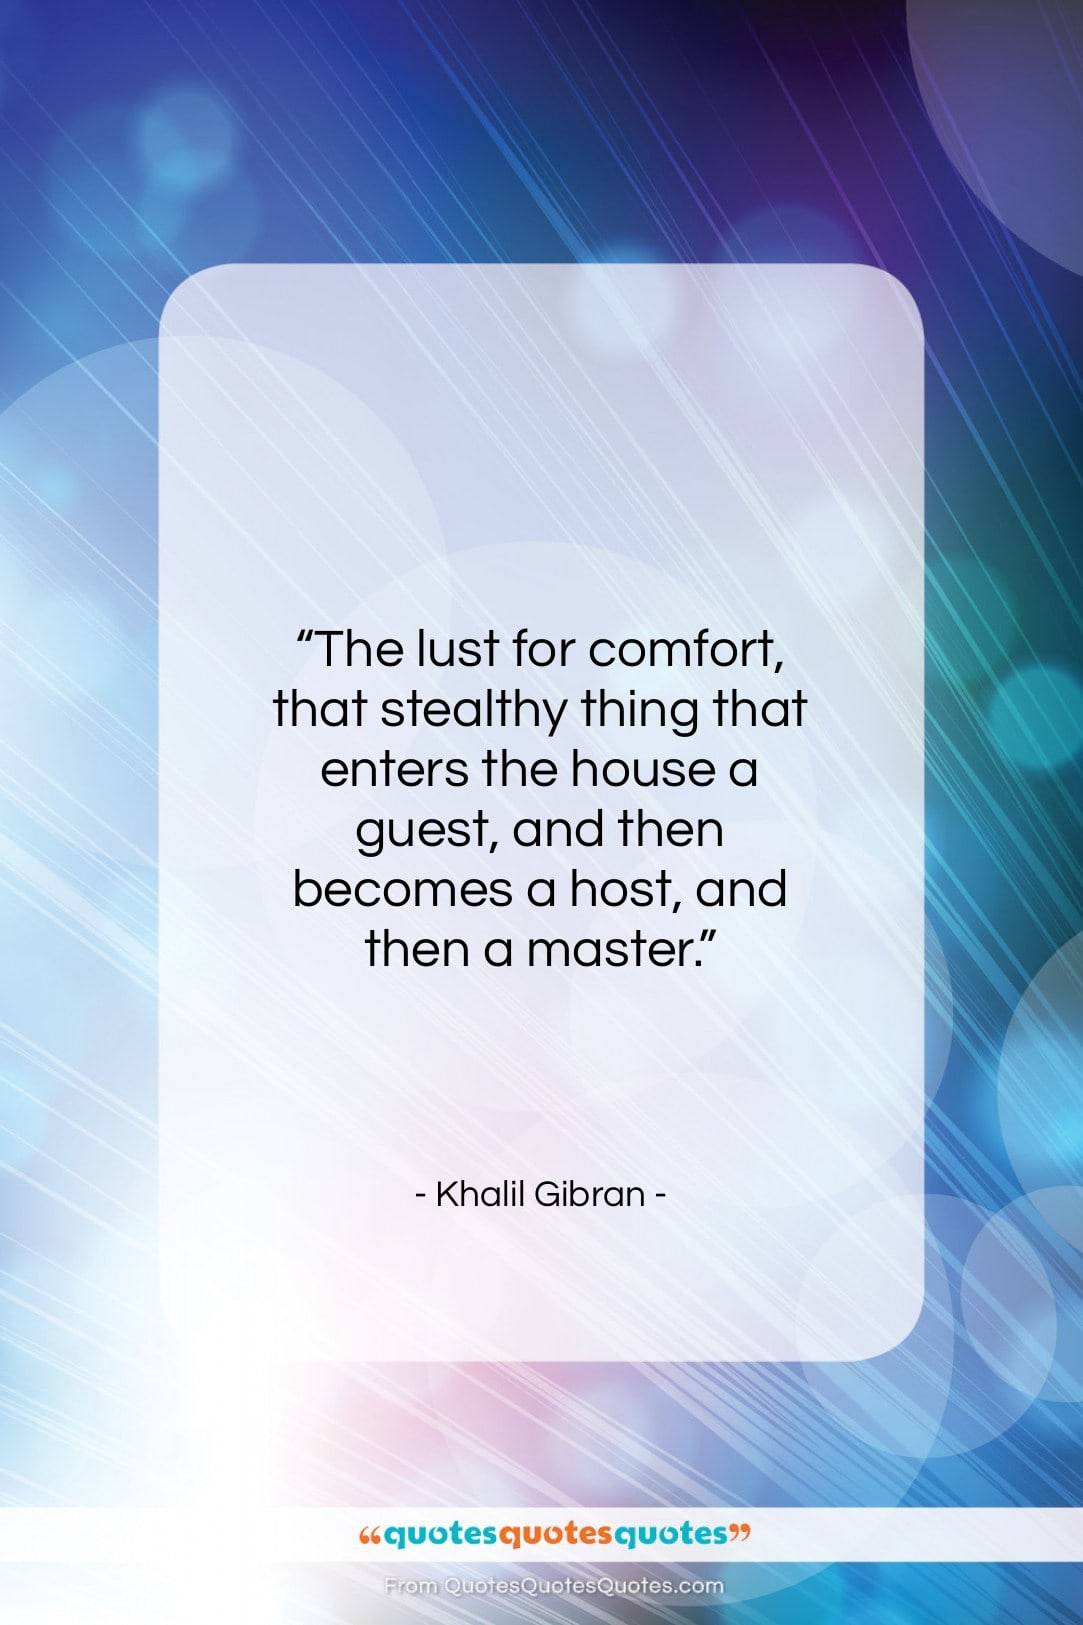 """Khalil Gibran quote: """"The lust for comfort, that stealthy thing…""""- at QuotesQuotesQuotes.com"""